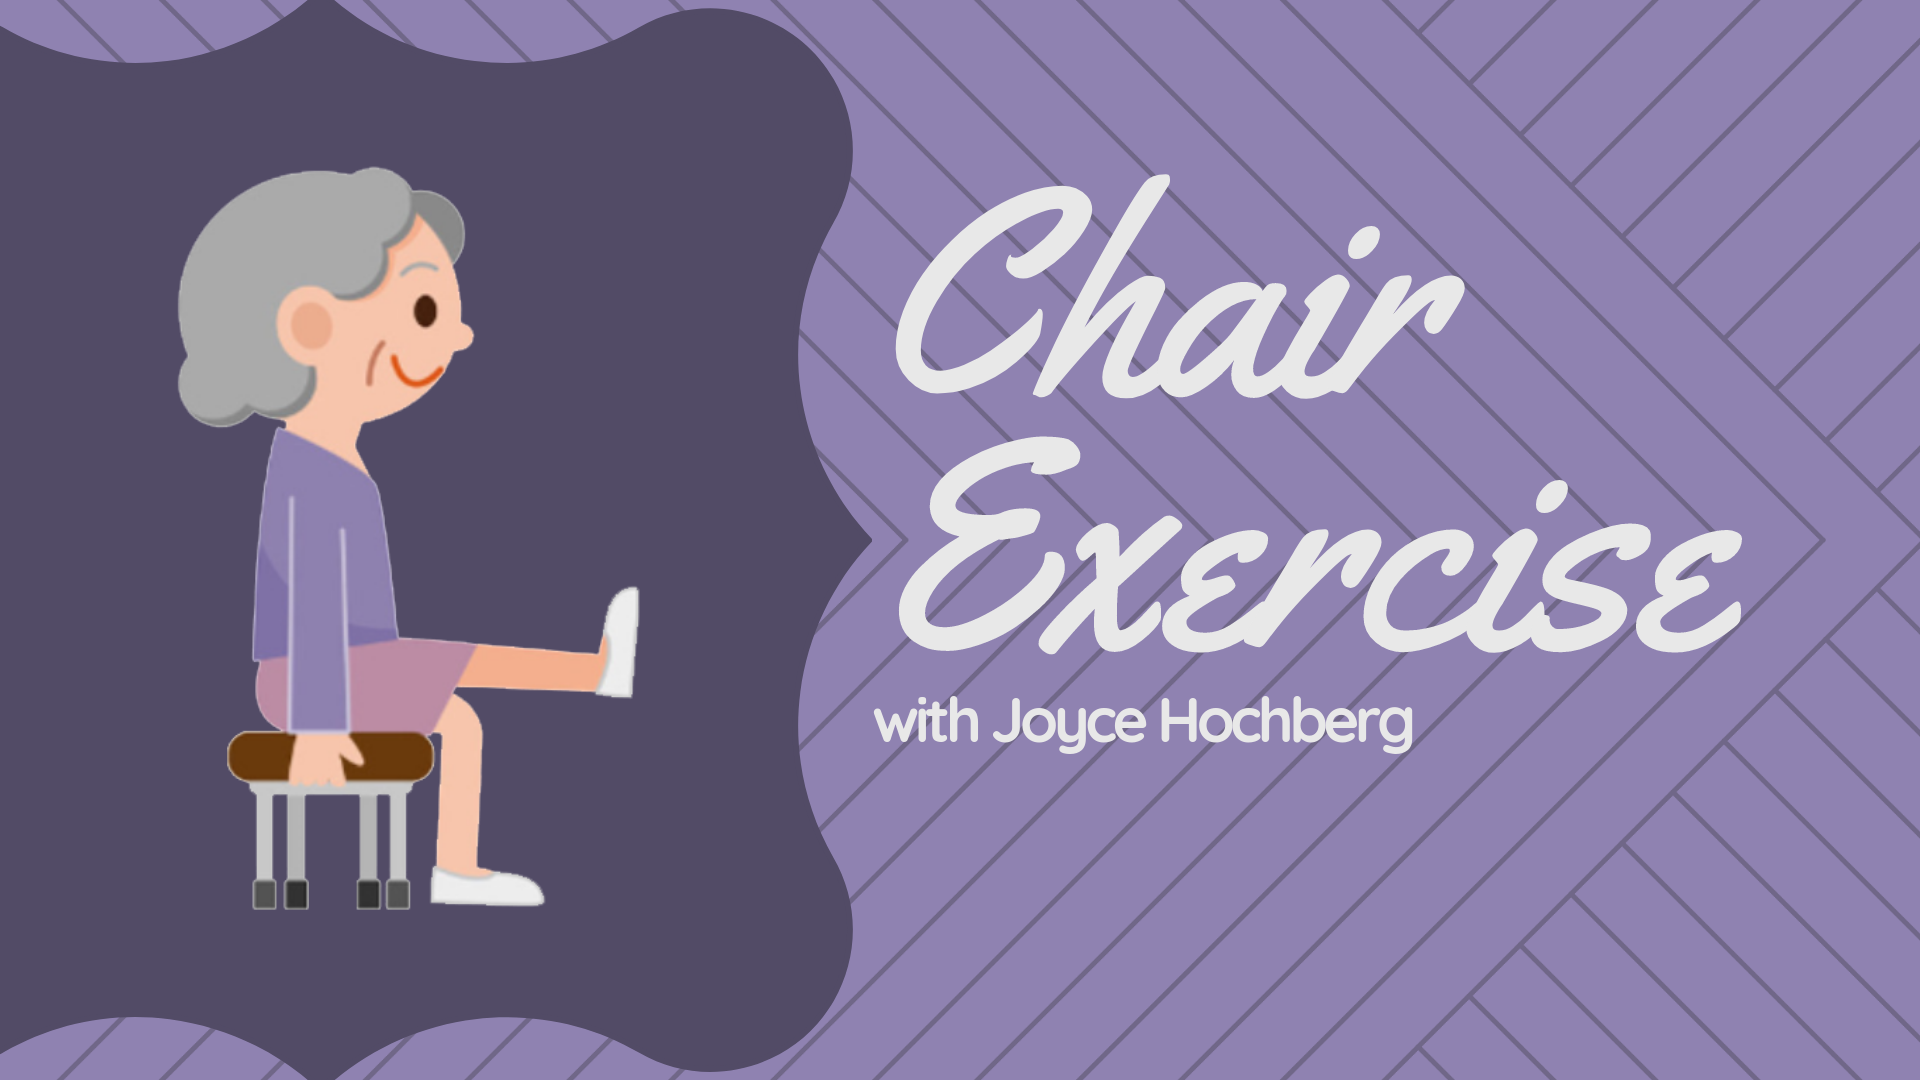 Chair Exercise with Joyce Hochberg